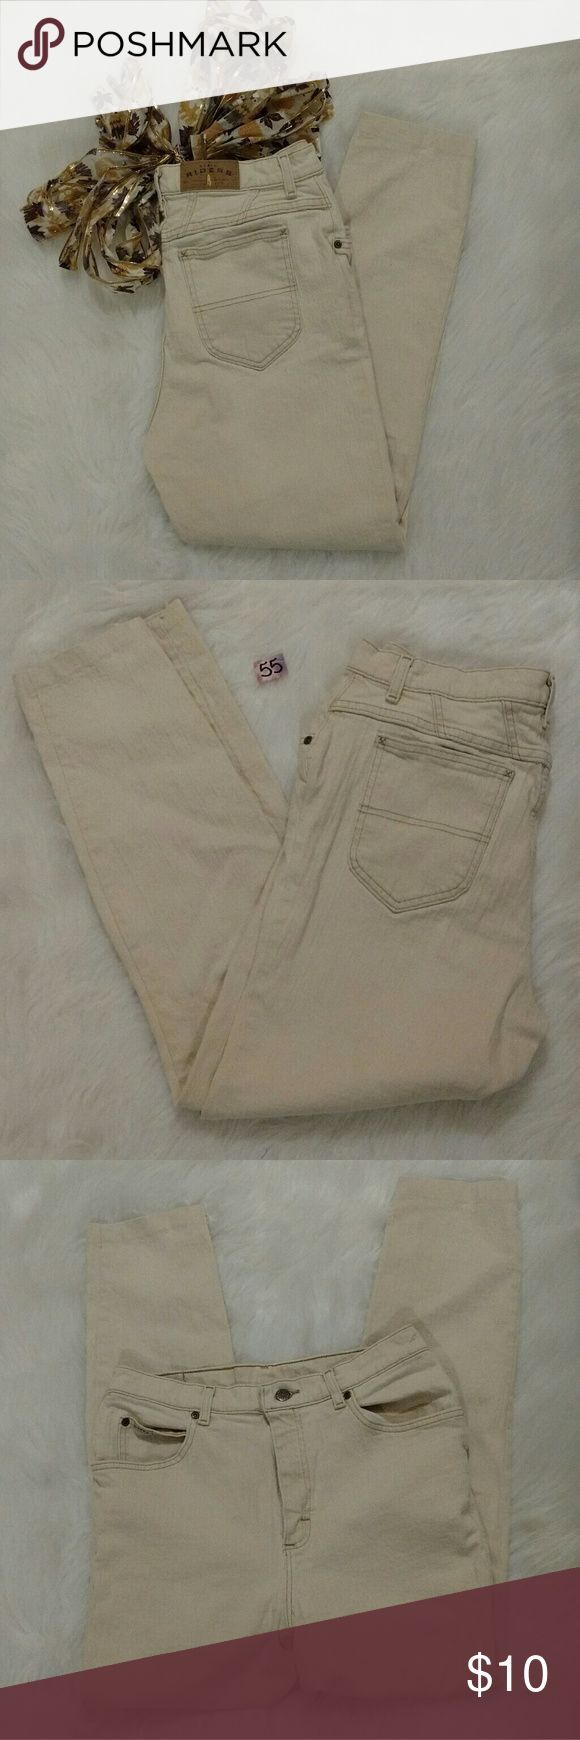 Riders jeans Cream color riders jeans. Still in great shape with a lot of life left. The only show of wear are two small spots, one on the top waist band of the jeans and one on the bottom right leg. These are not noticeable with out close inspection but I try to be extremely honest about the items in my closet. Size 12M waist 29/30 inches and 27.5 inseam. They are not skinny jeans but they are slimmer fitting towards the bottom. Riders Jeans